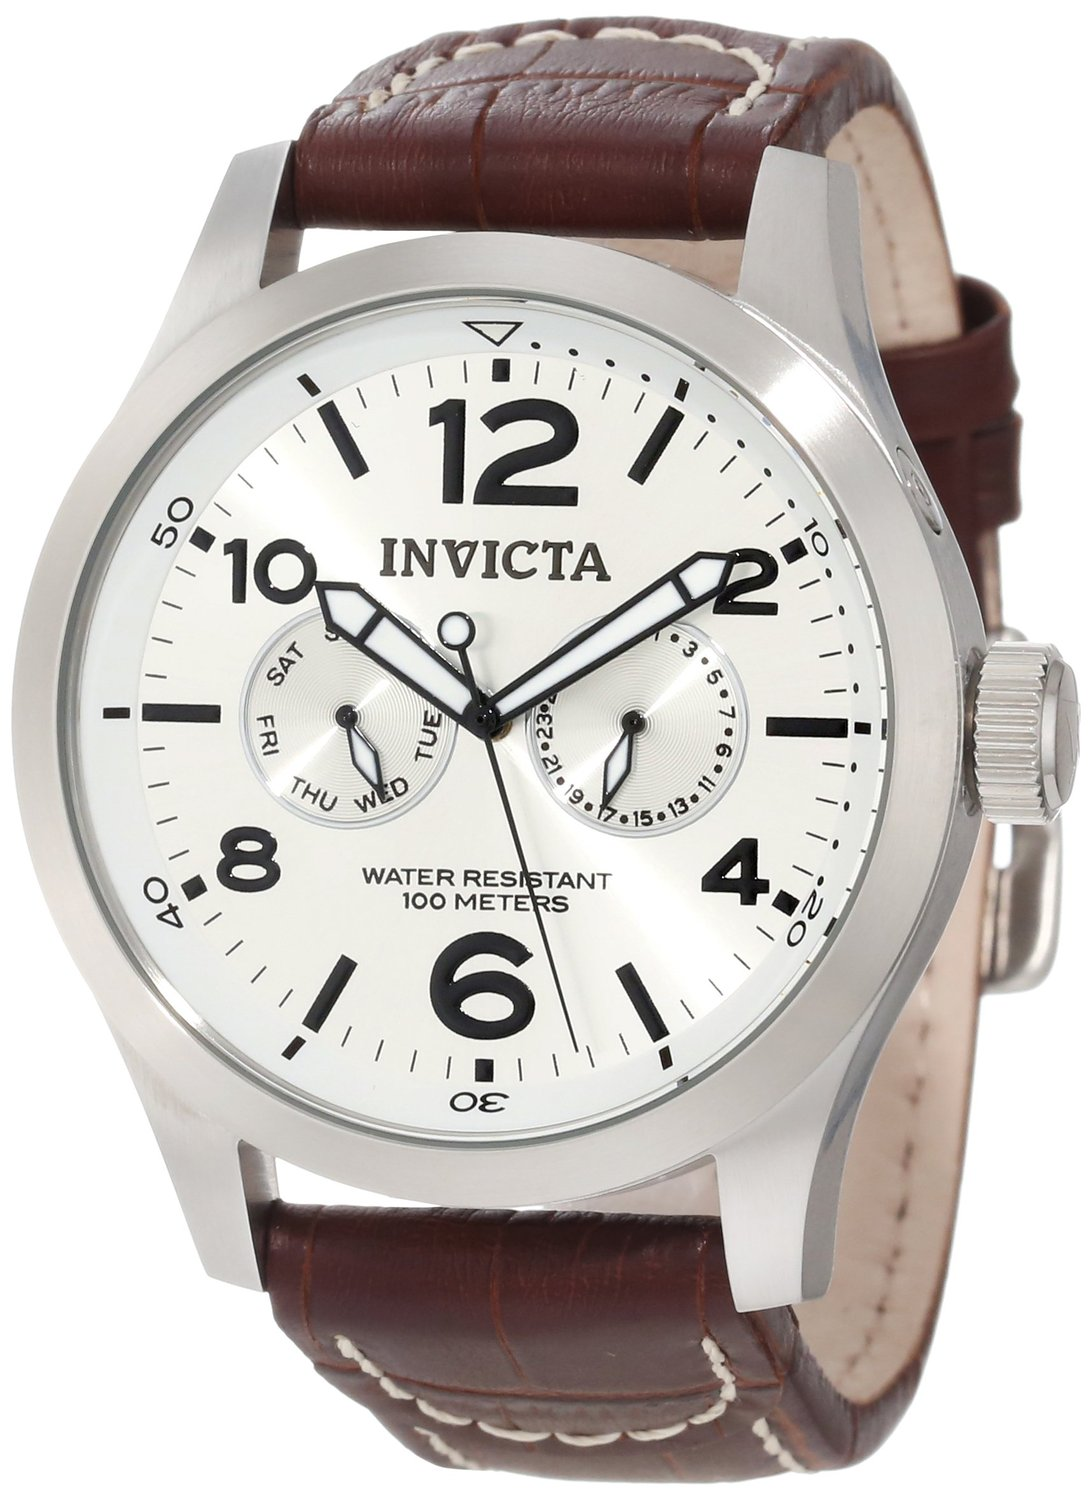 Invicta Men's 0765 II Collection Silver Dial Brown Leather Watch: Invicta